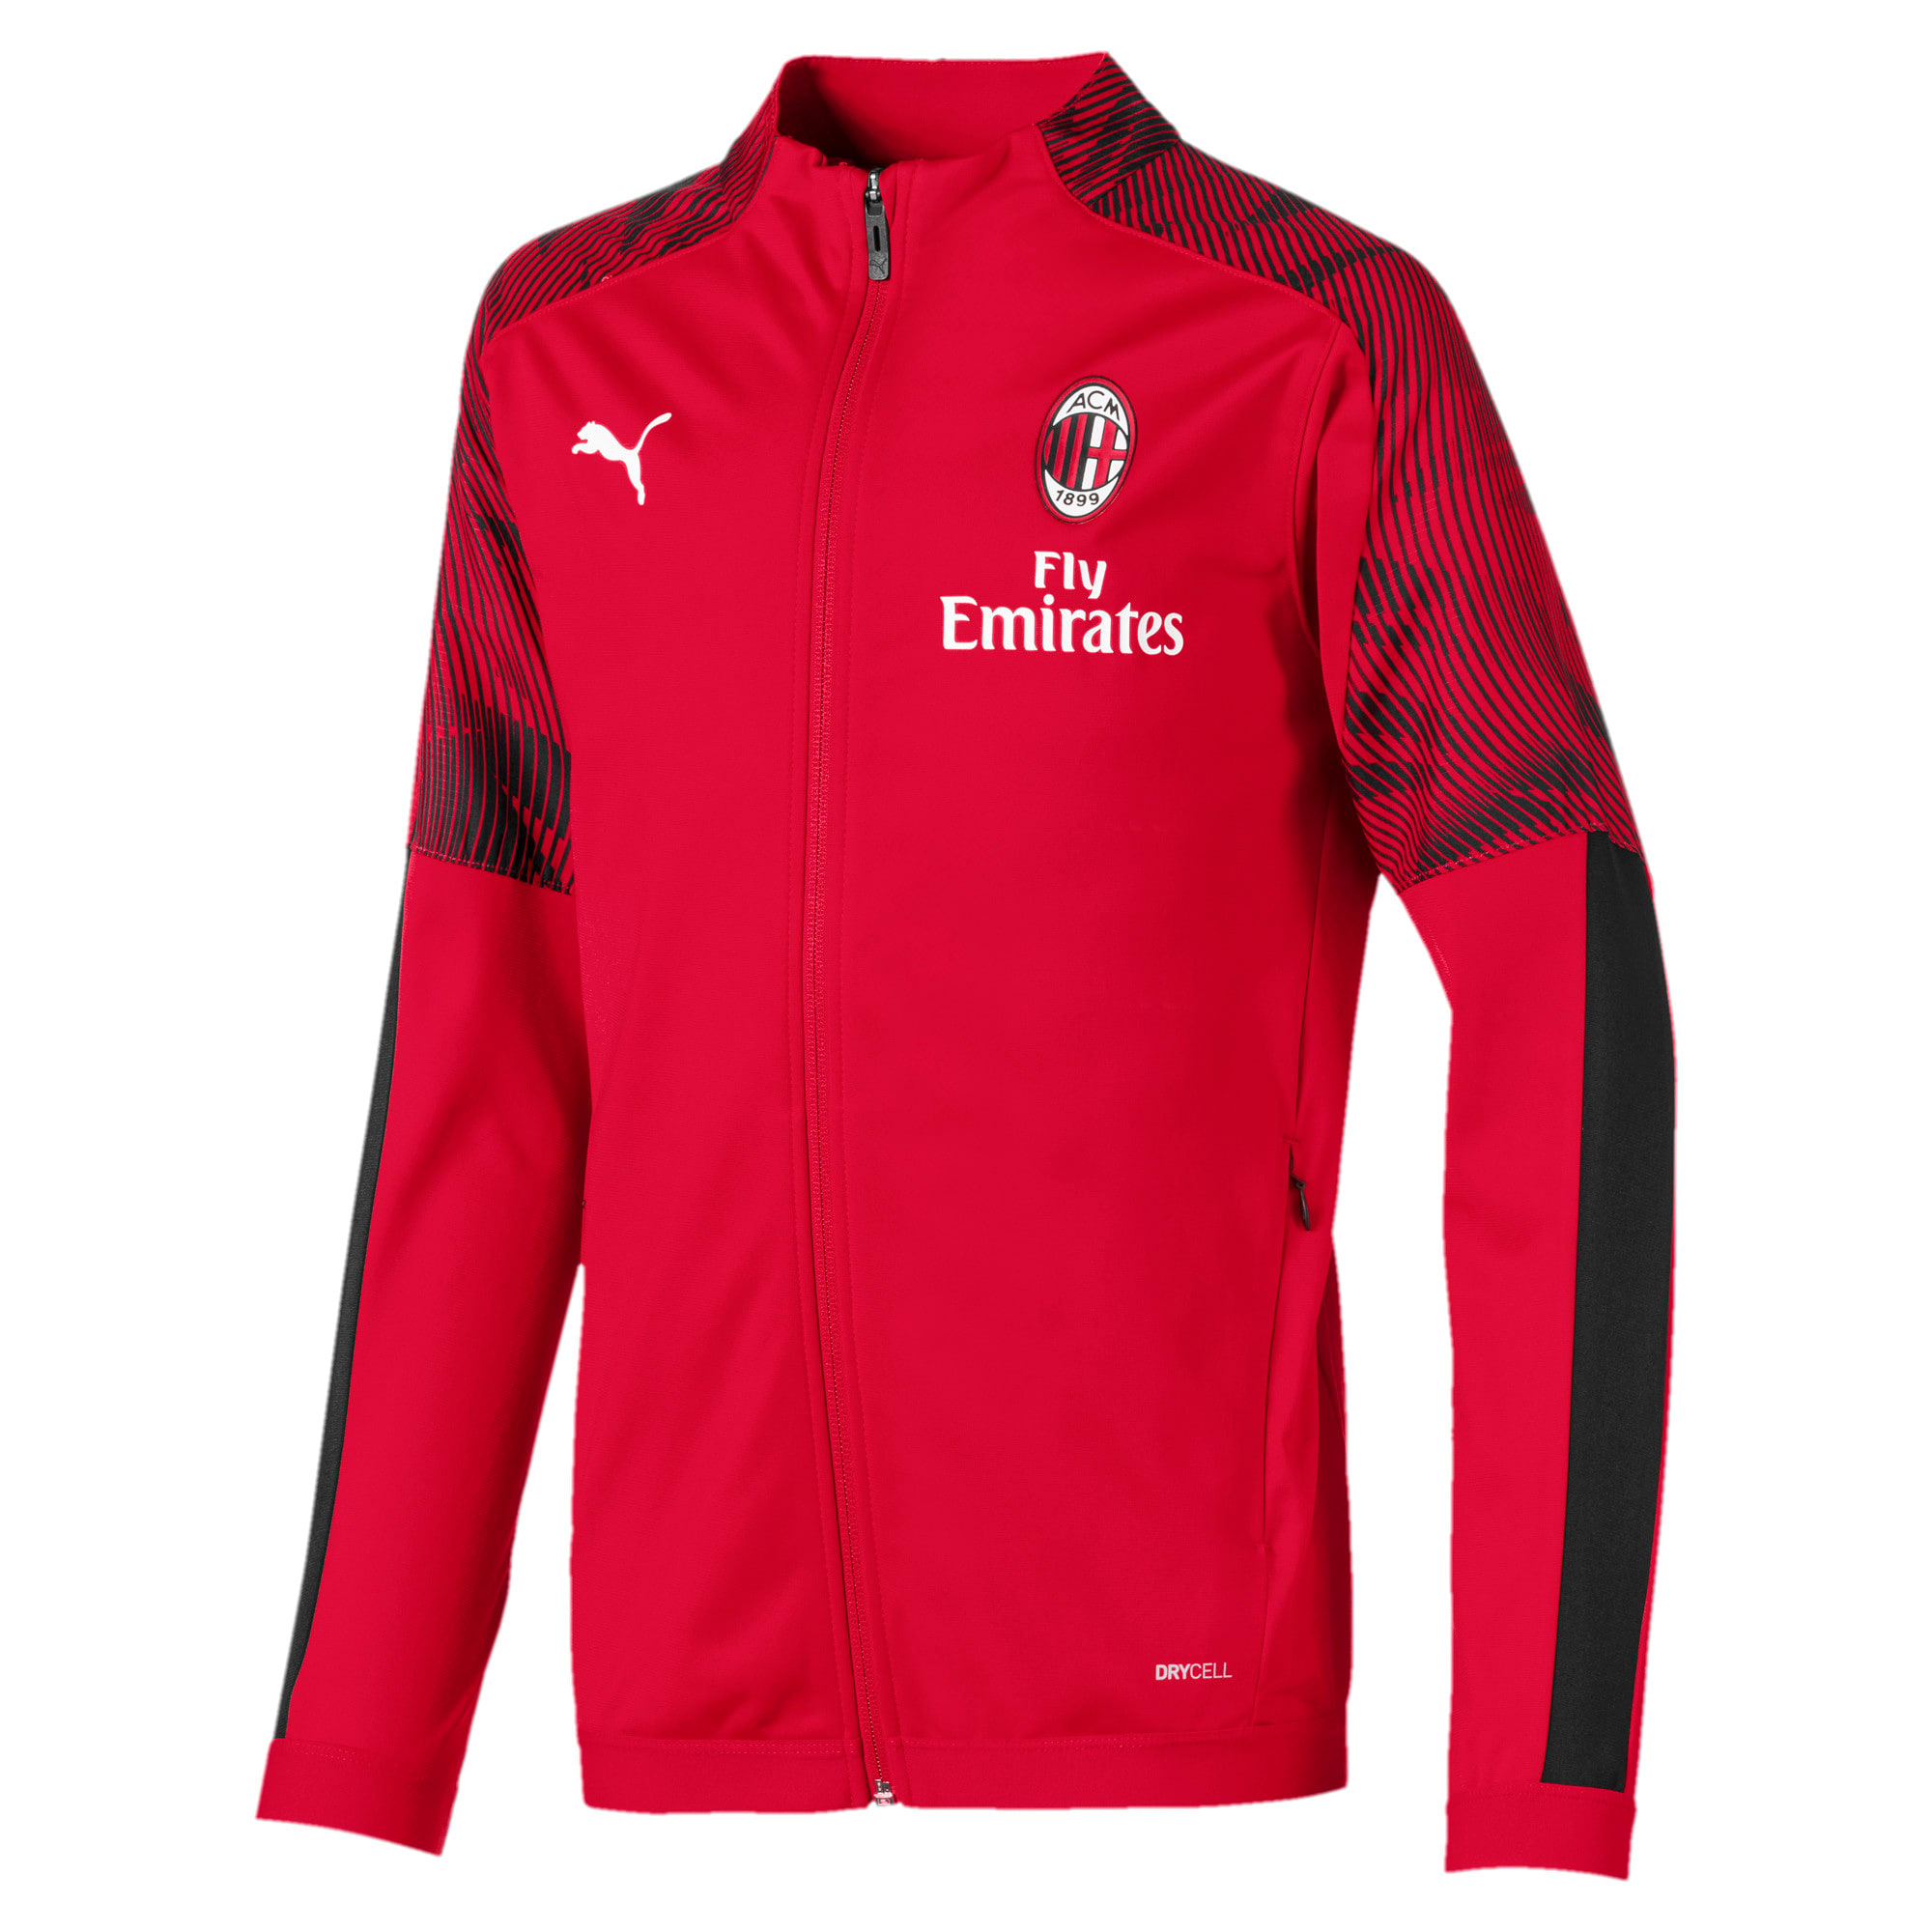 Thumbnail 1 of AC Milan Boys' Poly Jacket, Tango Red -Puma Black, medium